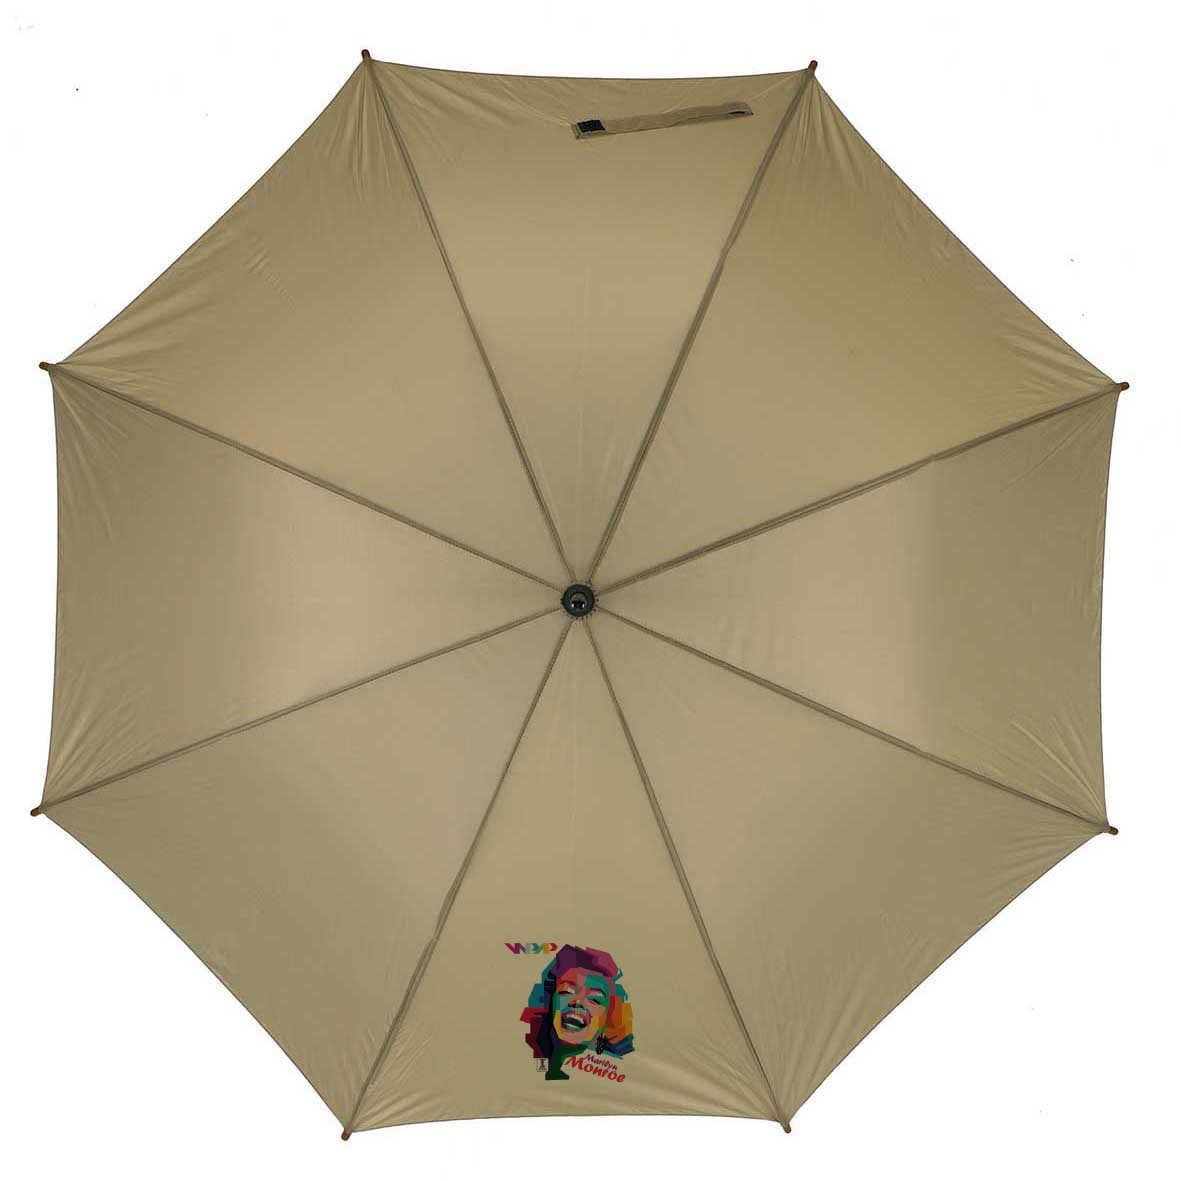 Automatic wooden stick umbrella - Beige ns-927 be subl